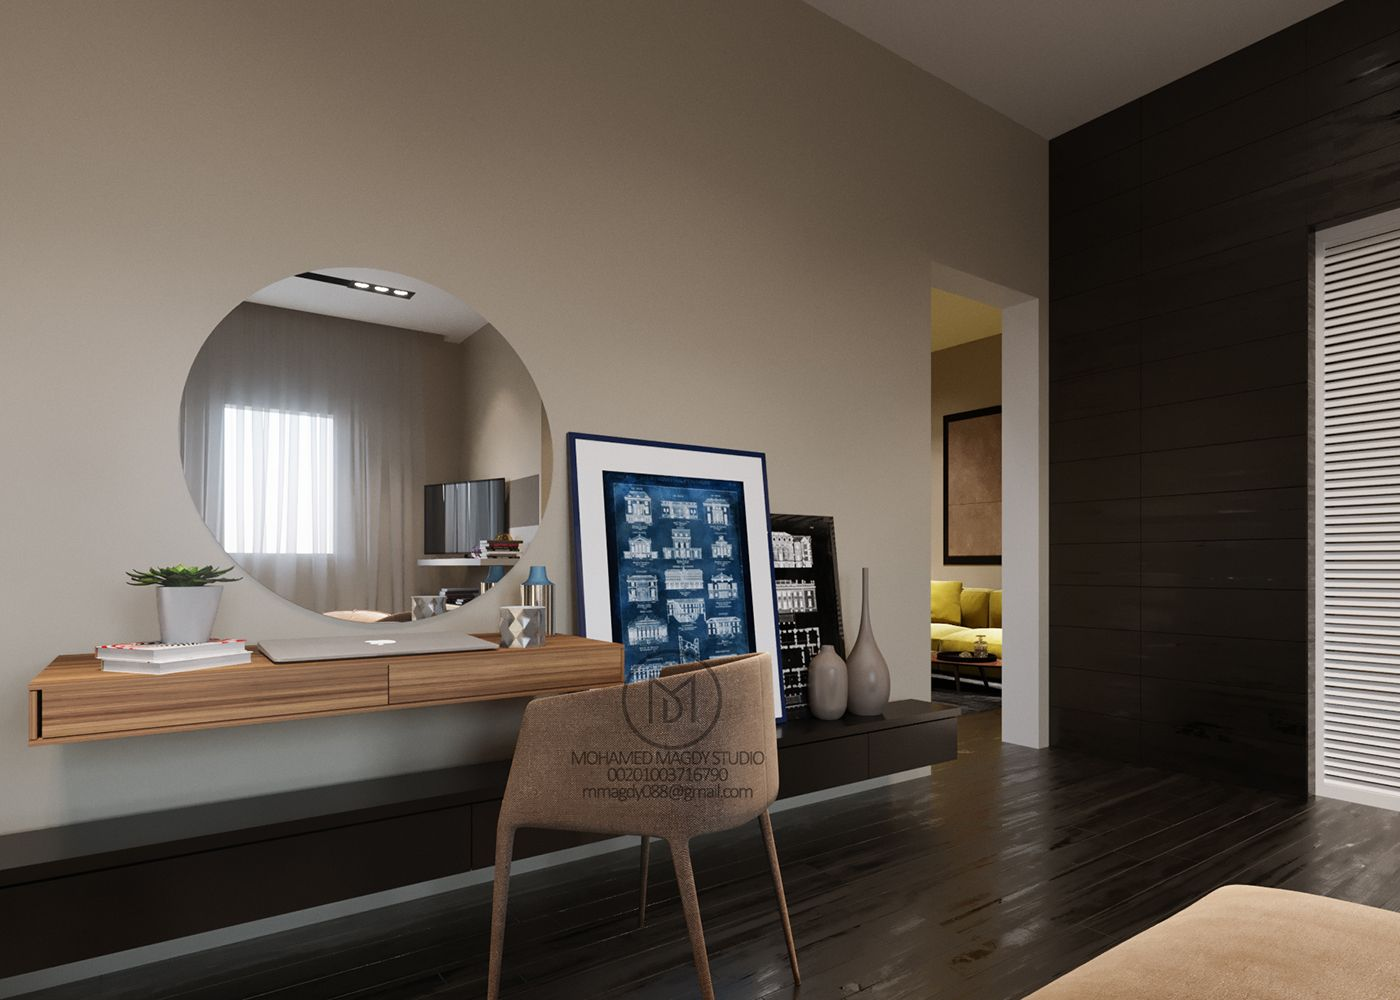 CONTEMPORARY DESIGN FOR BEDROOM on Behance